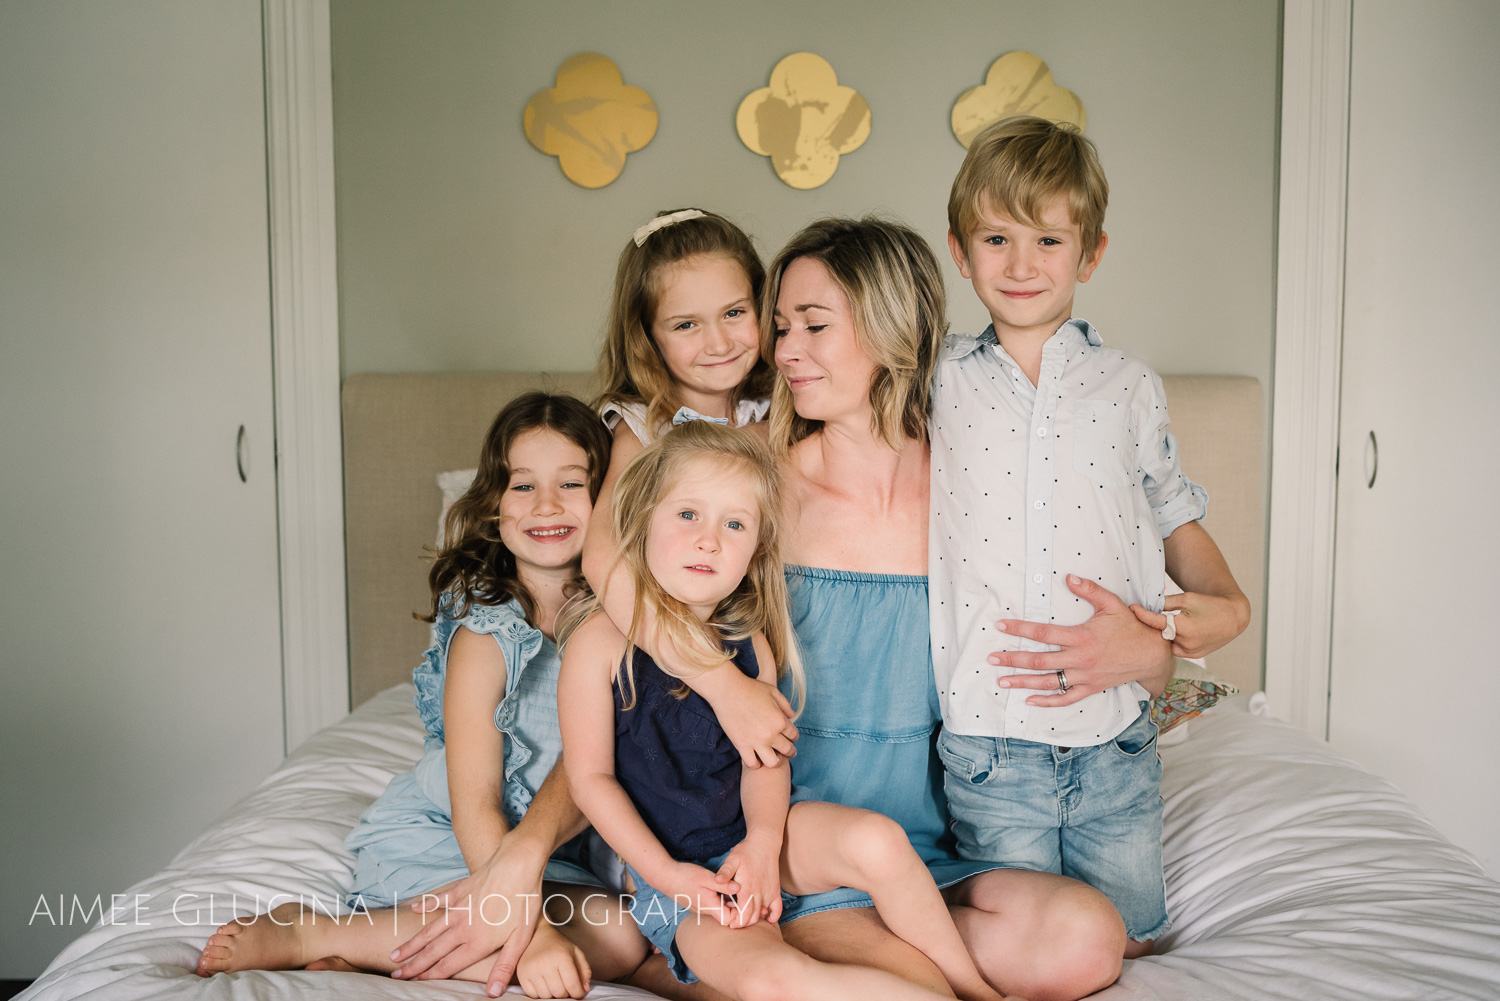 Baudinet Family Session by Aimee Glucina Photography-7.jpg